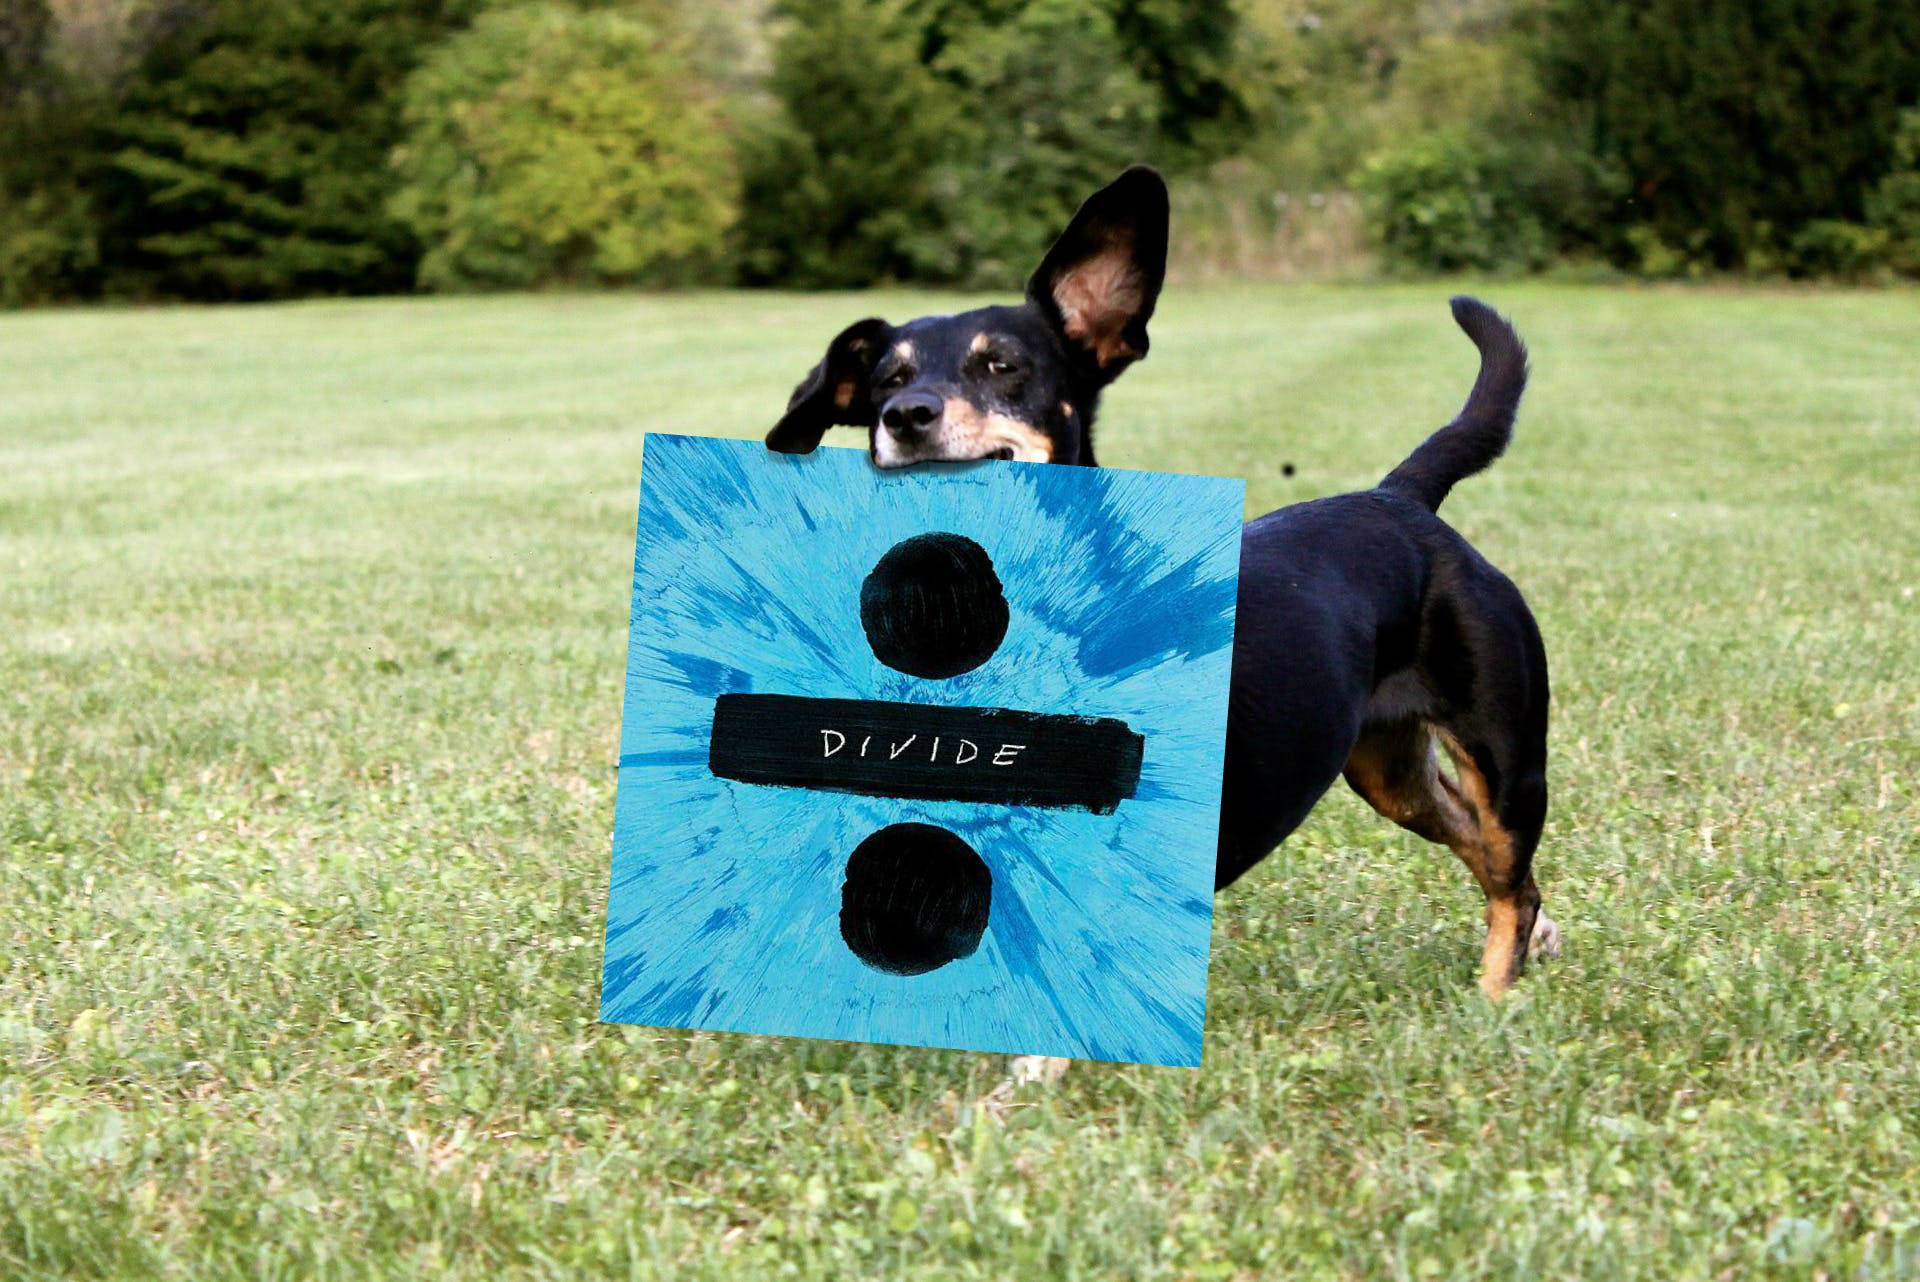 This is a dachshund holding a copy of Ed Sheeran's new album Divide